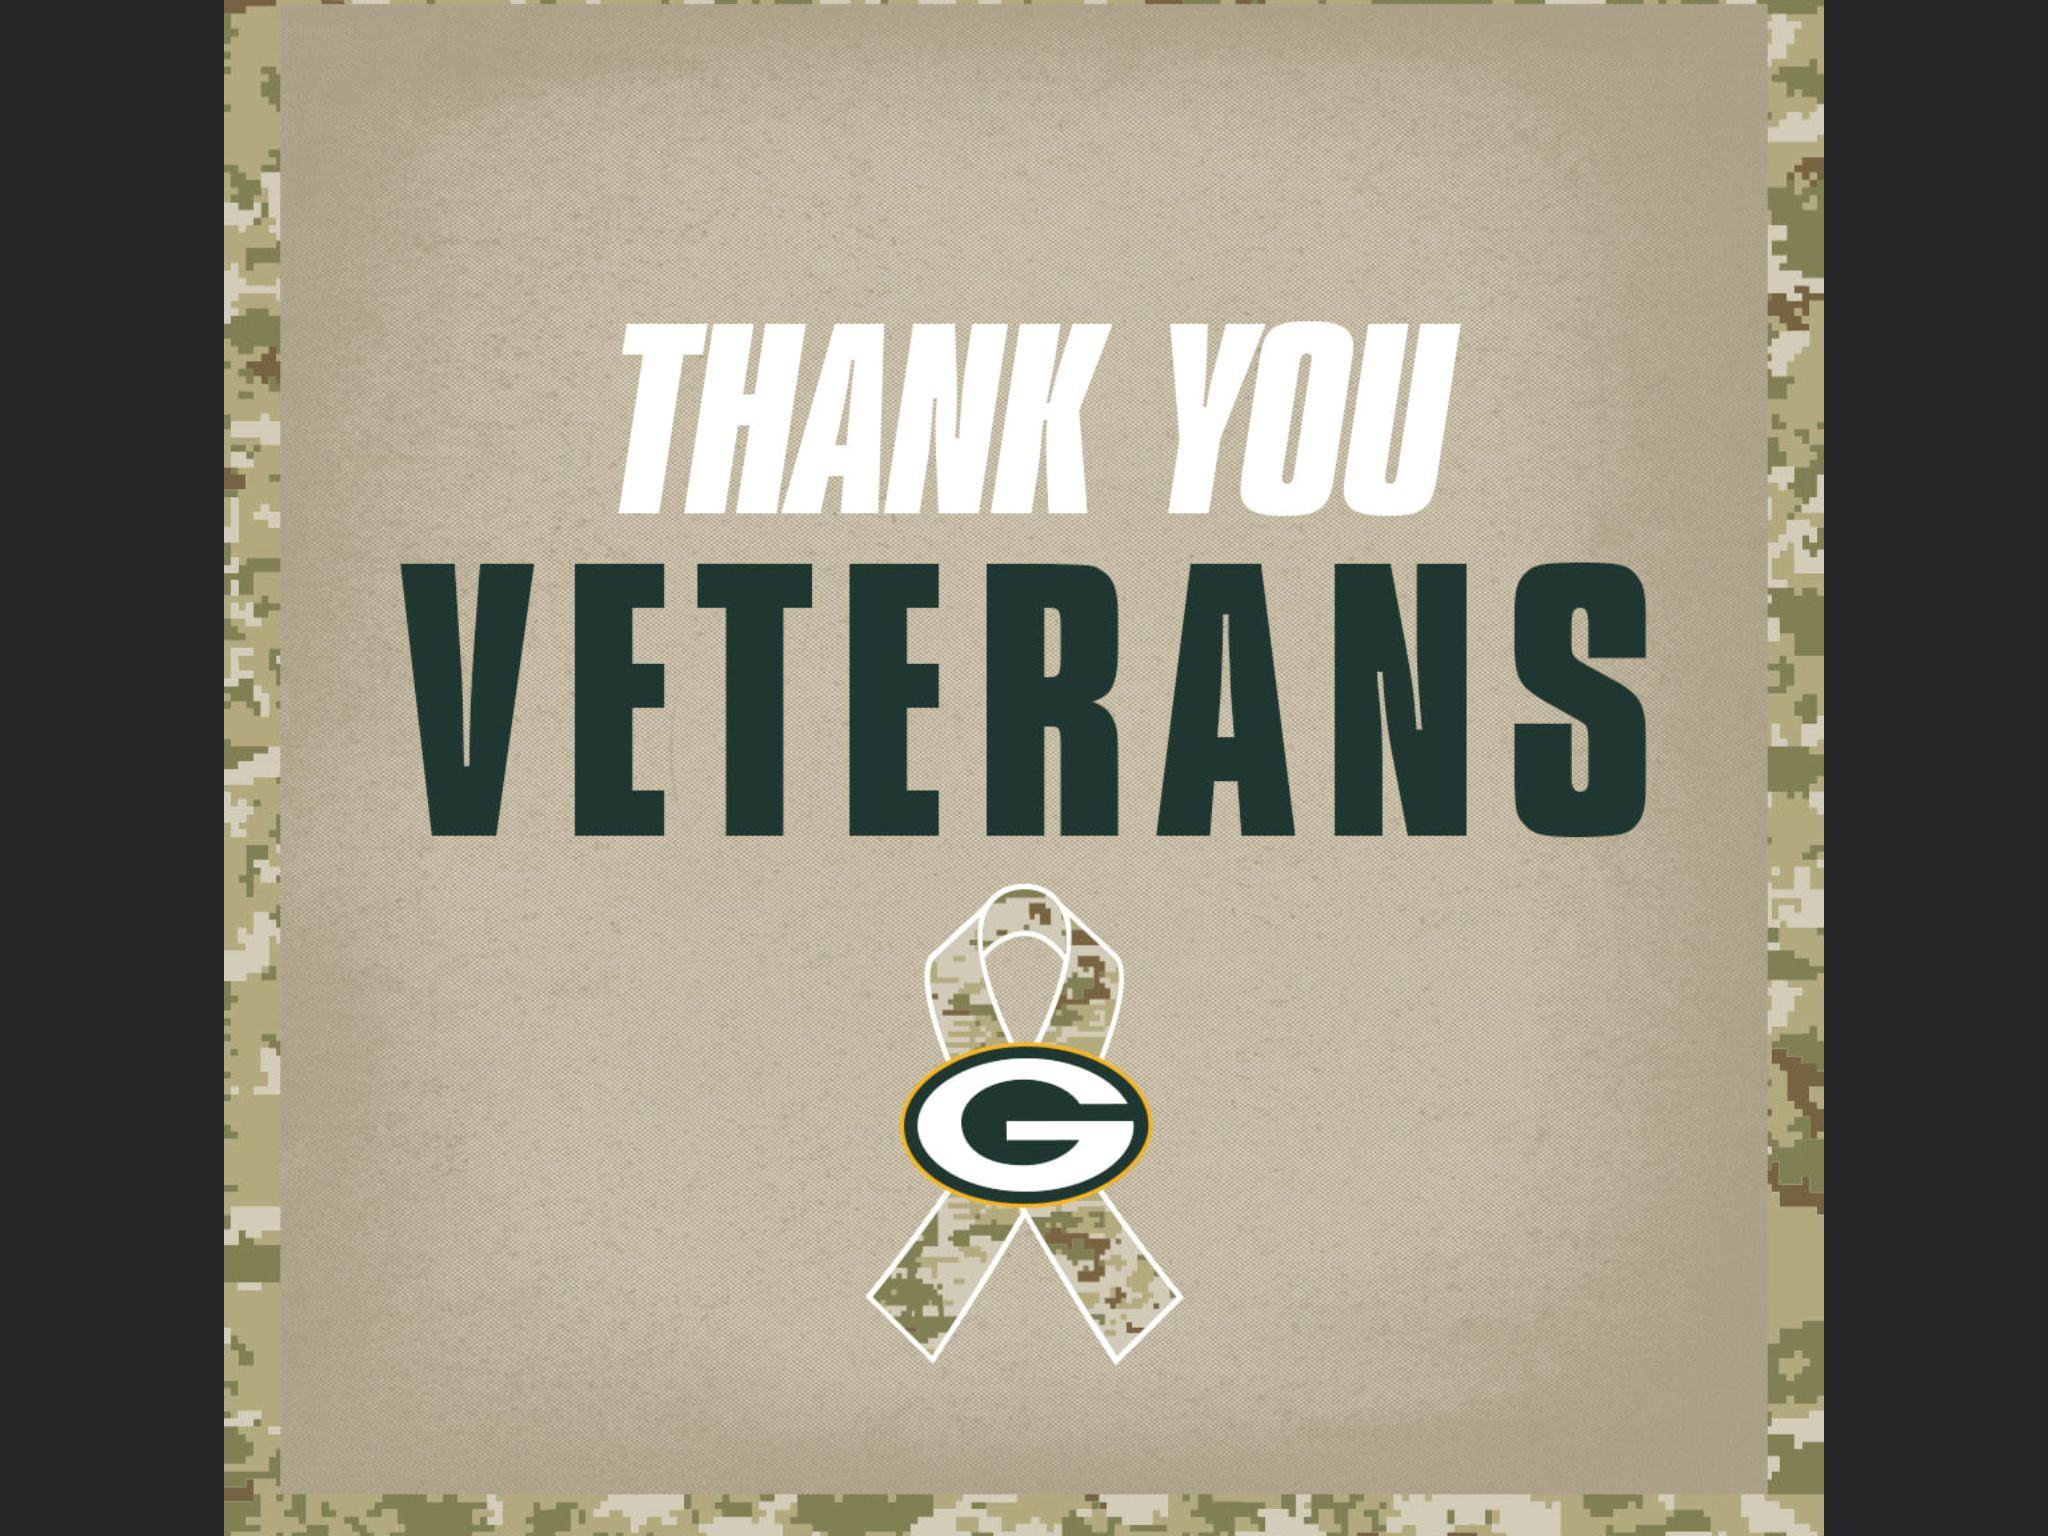 Pin By Brooke Palubicki On Packers Rodgers Green Bay Green Bay Packers Packers